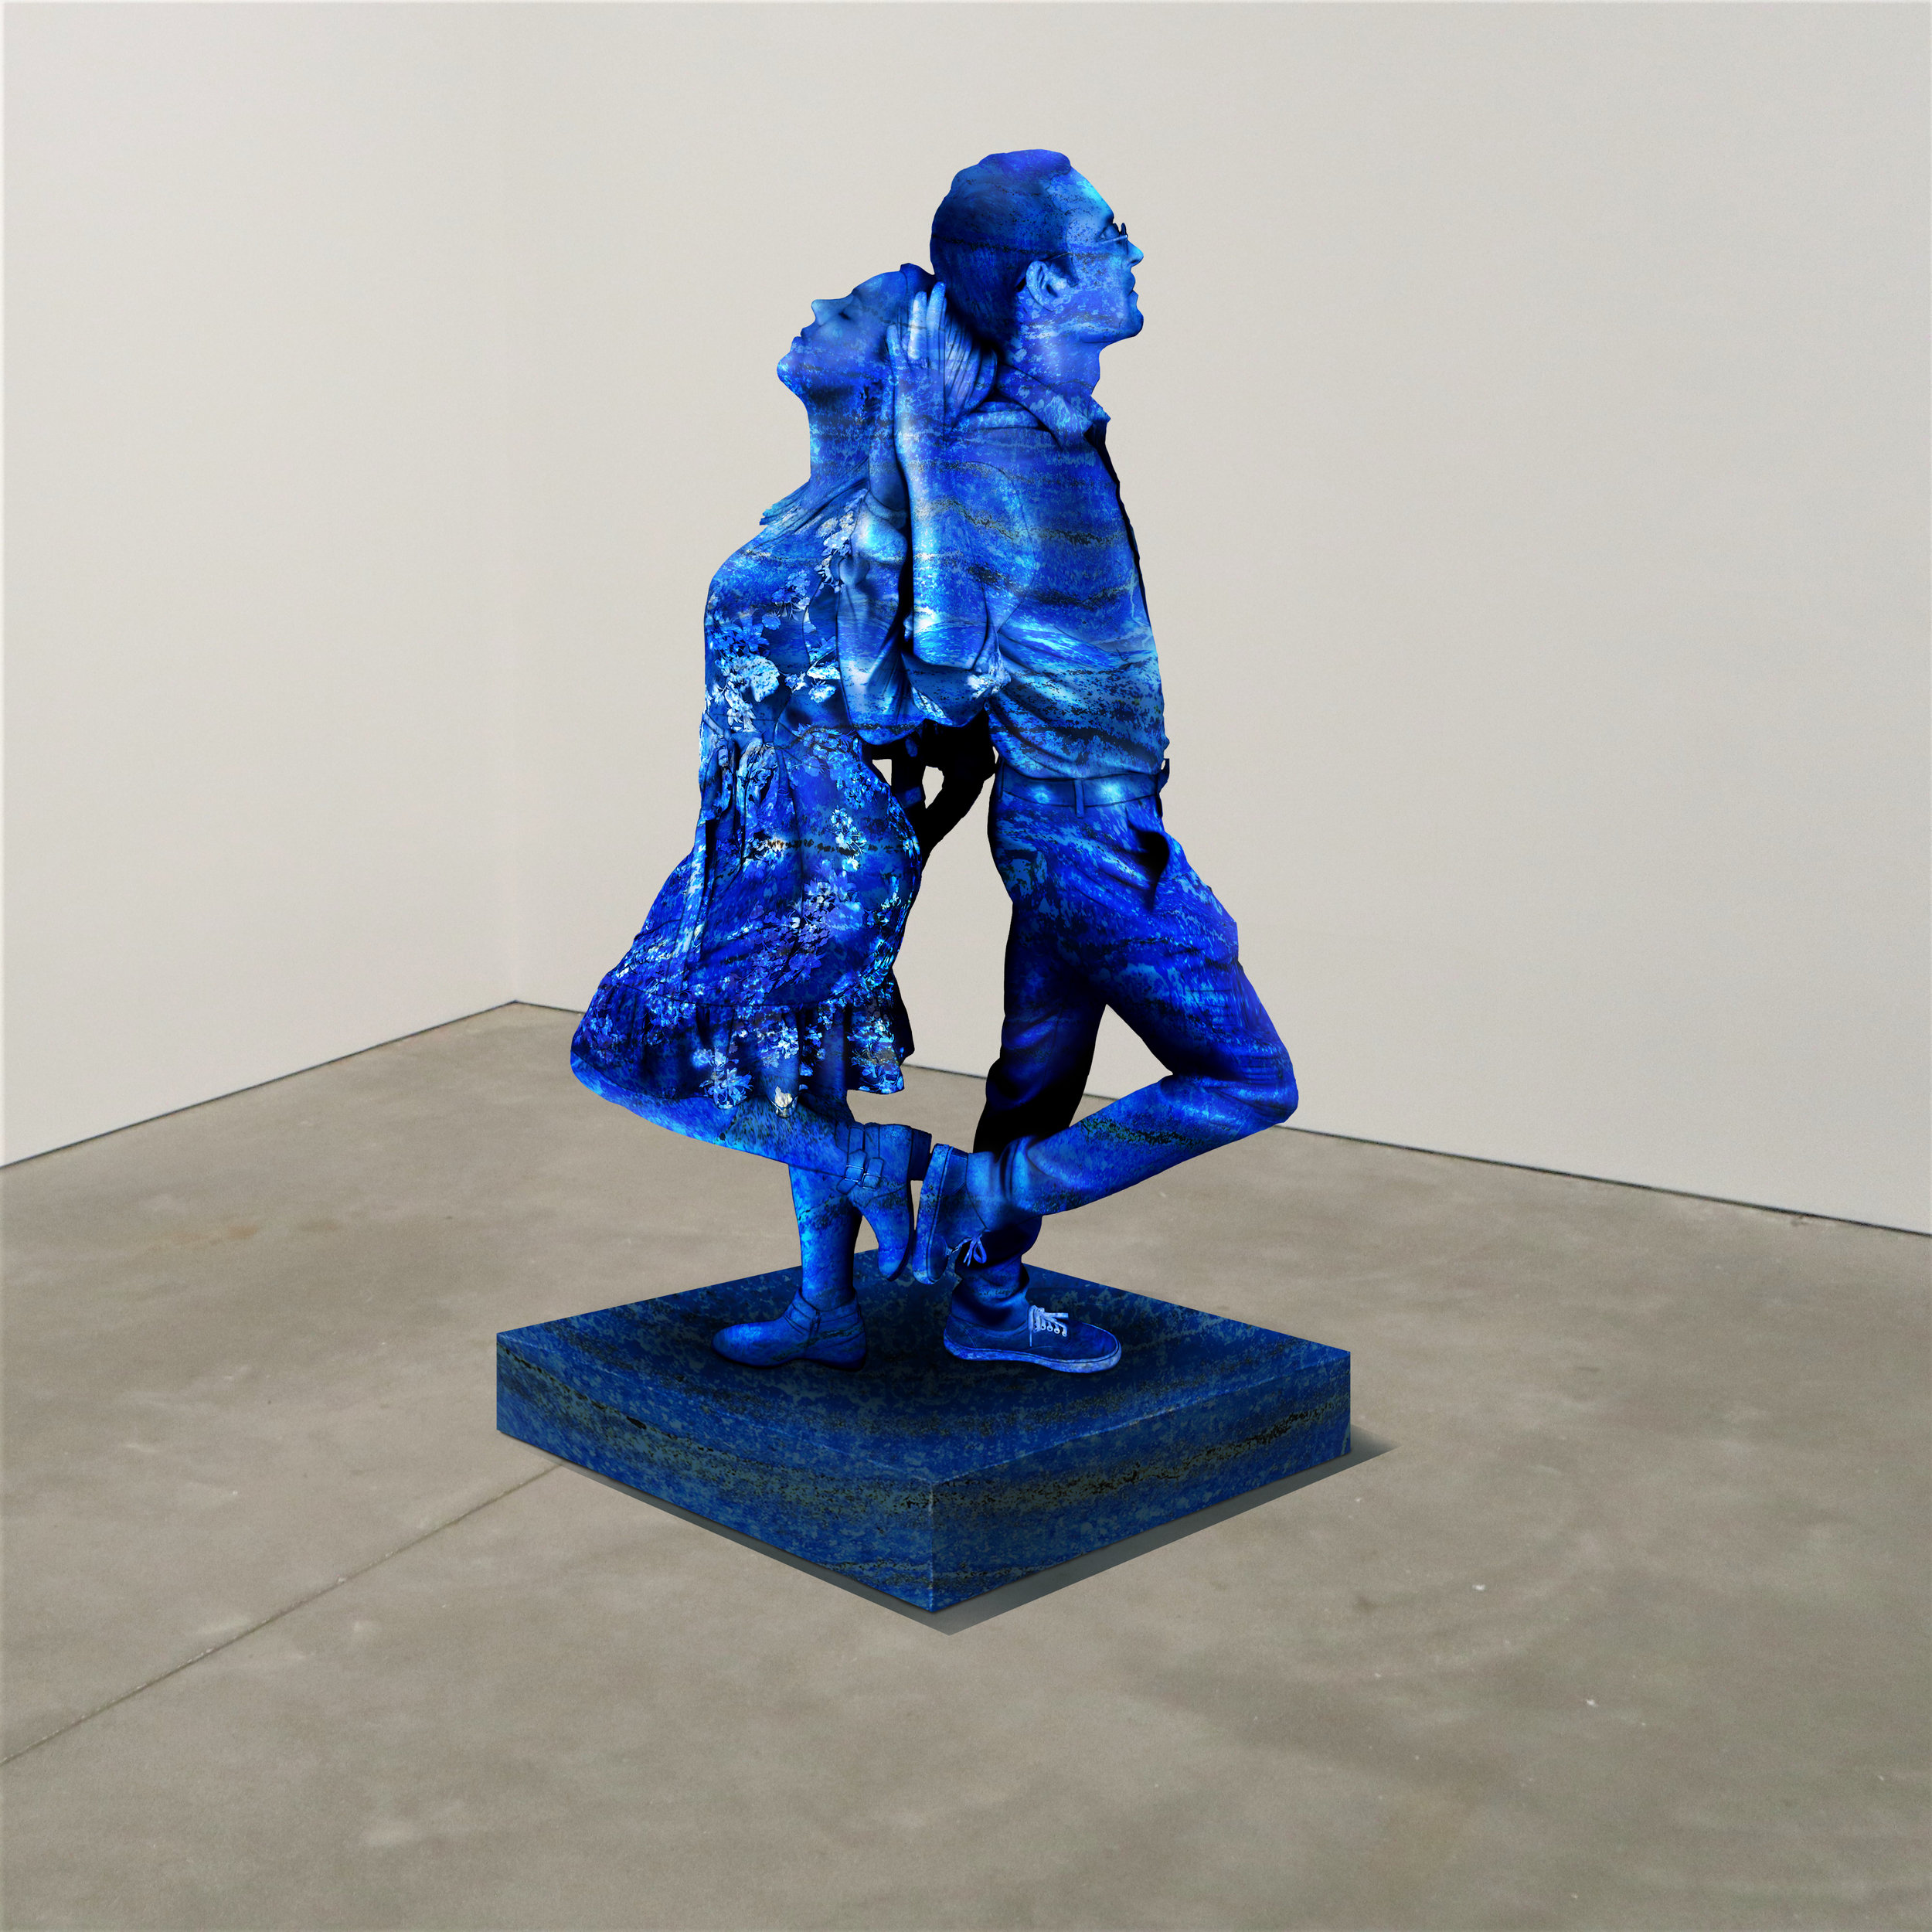 """My Head/Hand,"" lapis lazuli, Institute of Contemporary Art, Boston   2018  JPG  During an installation at the Institute of Contemporary Art in Boston, viewers were invited to imagine themselves as statues in the ICA's permanent collection. Participants were photographed posing as a statue they felt represented themselves, created a name for their fictional statue, and selected a stone from which their statue would be made. Professional and amateur digital artists were commissioned to create renderings of the statues, which were superimposed on photos of the ICA's permanent collection gallery space."